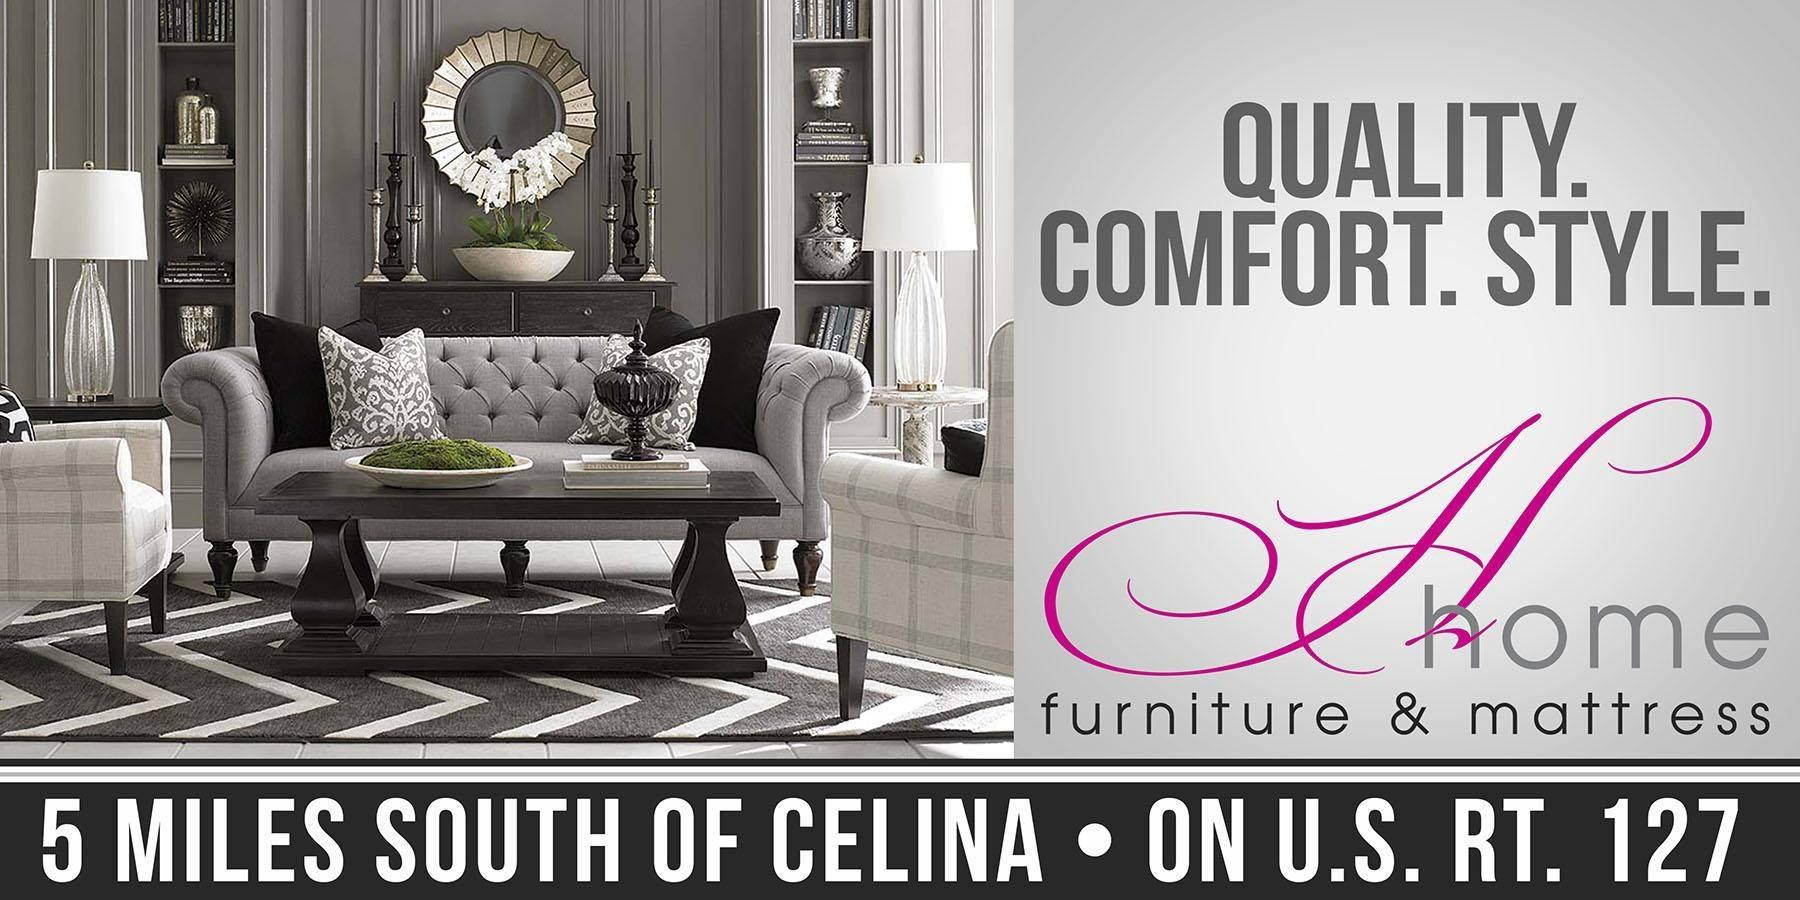 Home Furniture Mattress Coupons Near Me In Celina 8coupons